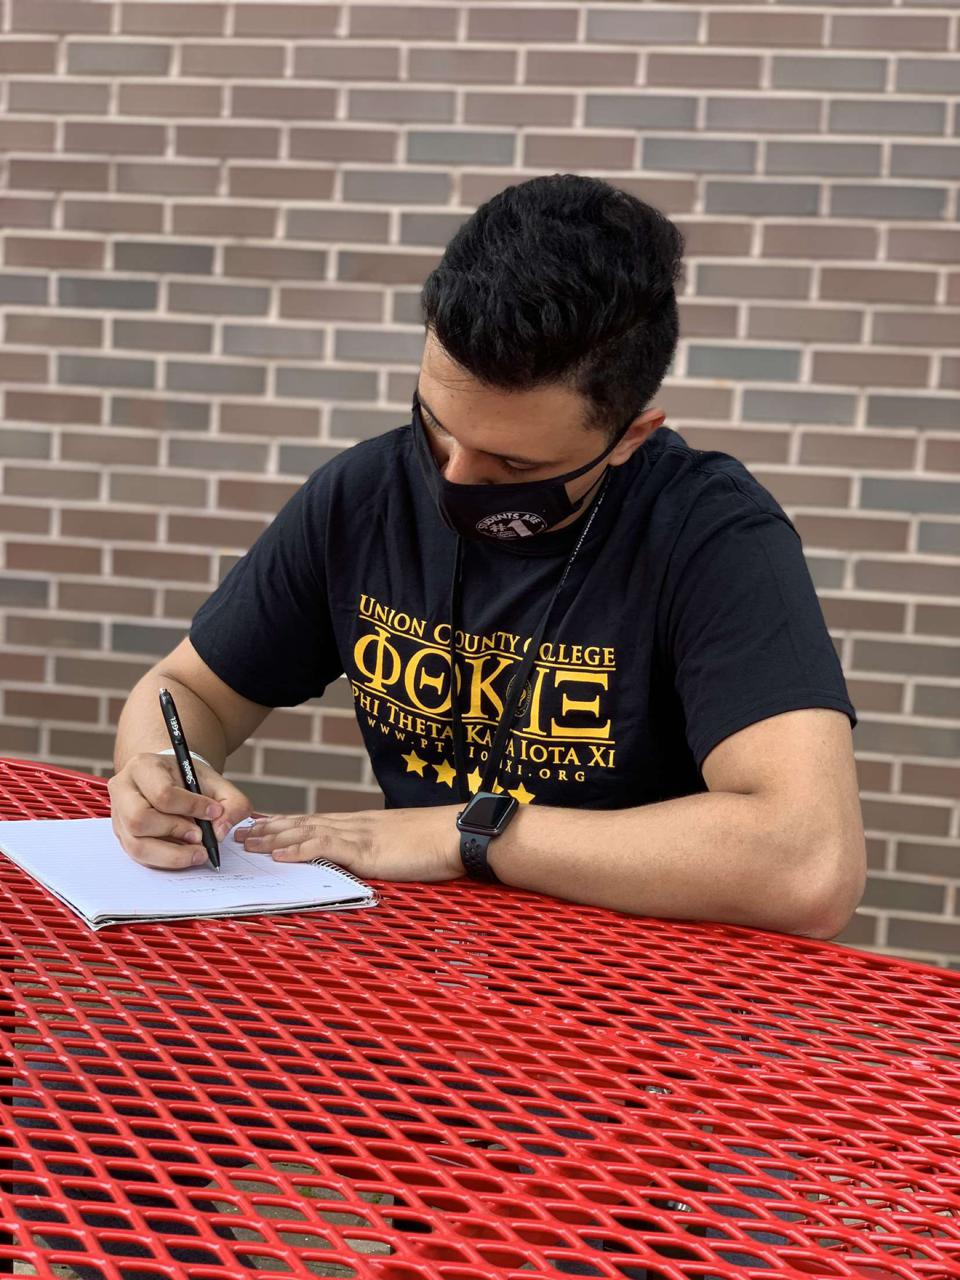 Masked UCC student in a t-shirt writing with a pen and notebook.